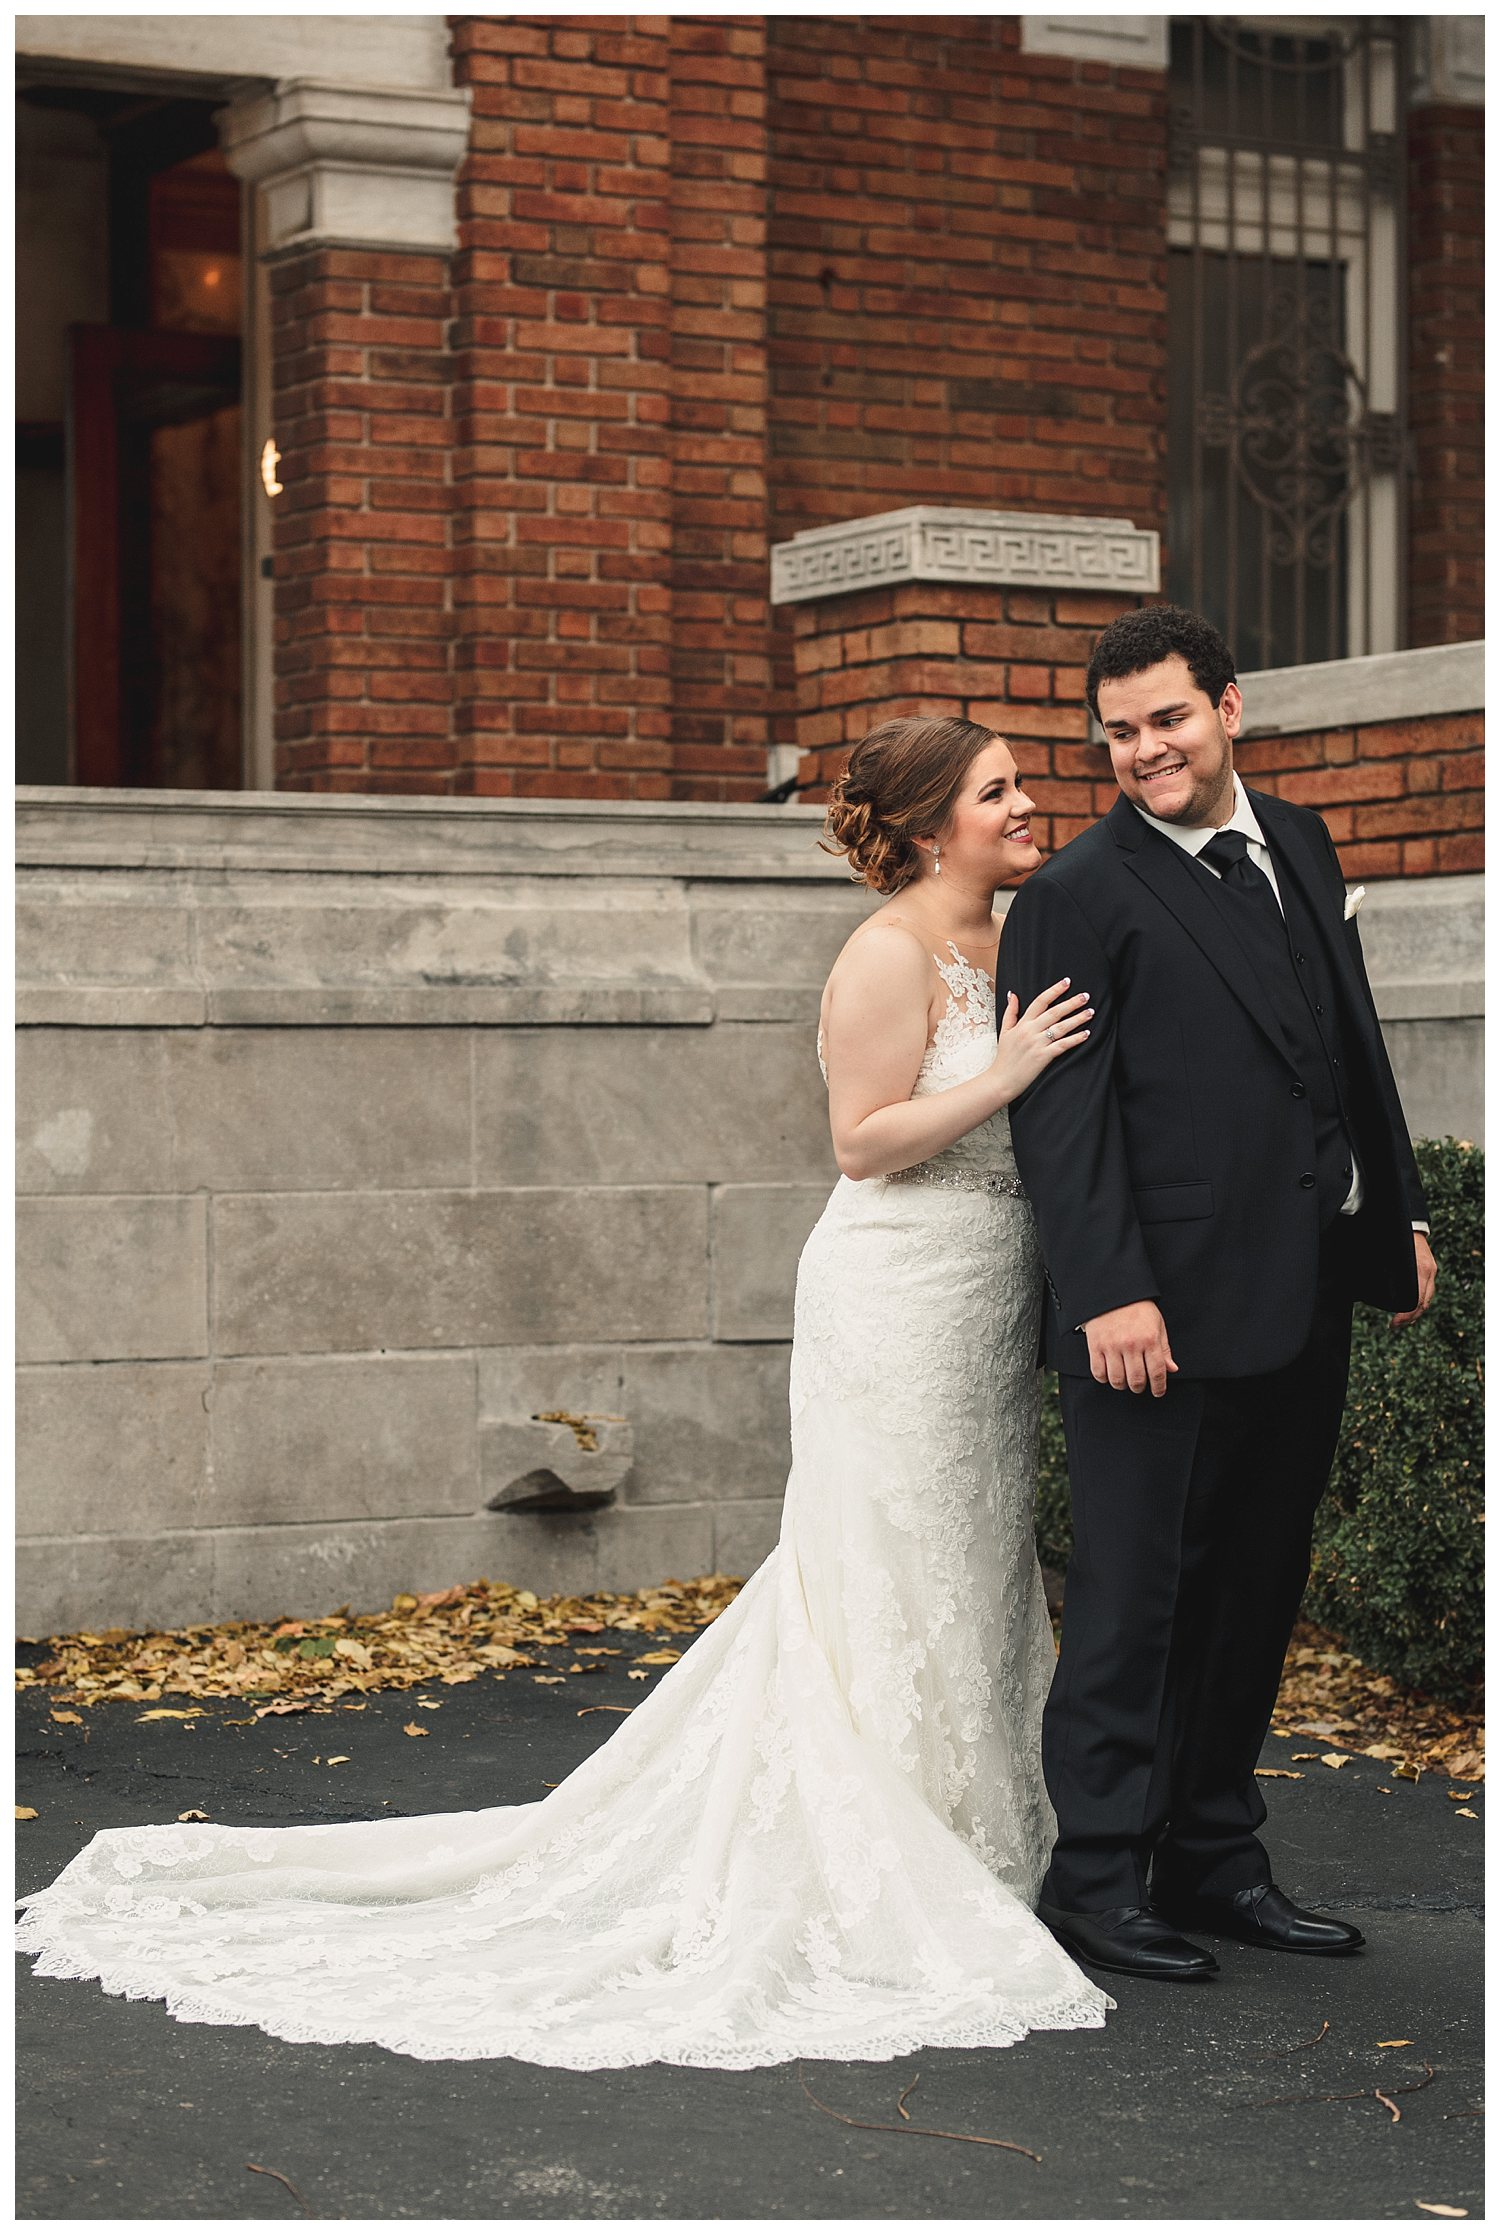 Kelsey_Diane_Photography_Loose_Mansion_Wedding_Photography_Kansas_City_Victor_Lyndsay_0138.jpg